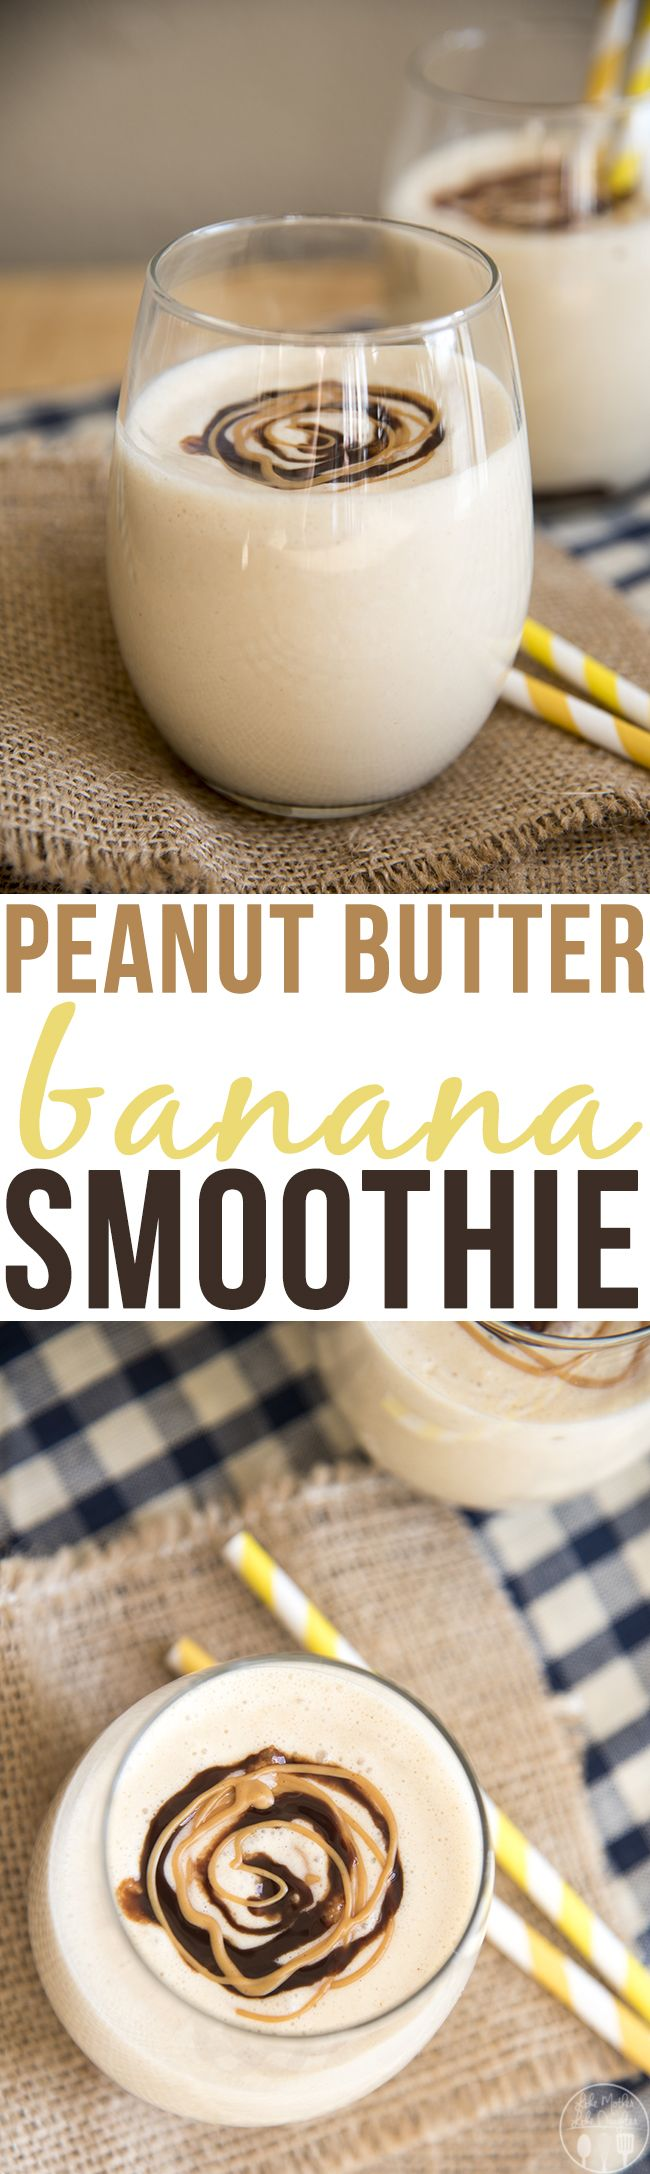 This creamy peanut butter banana smoothie comes together in minutes for a quick breakfast or late night sweet. (Favorite Desserts Sweet Treats)